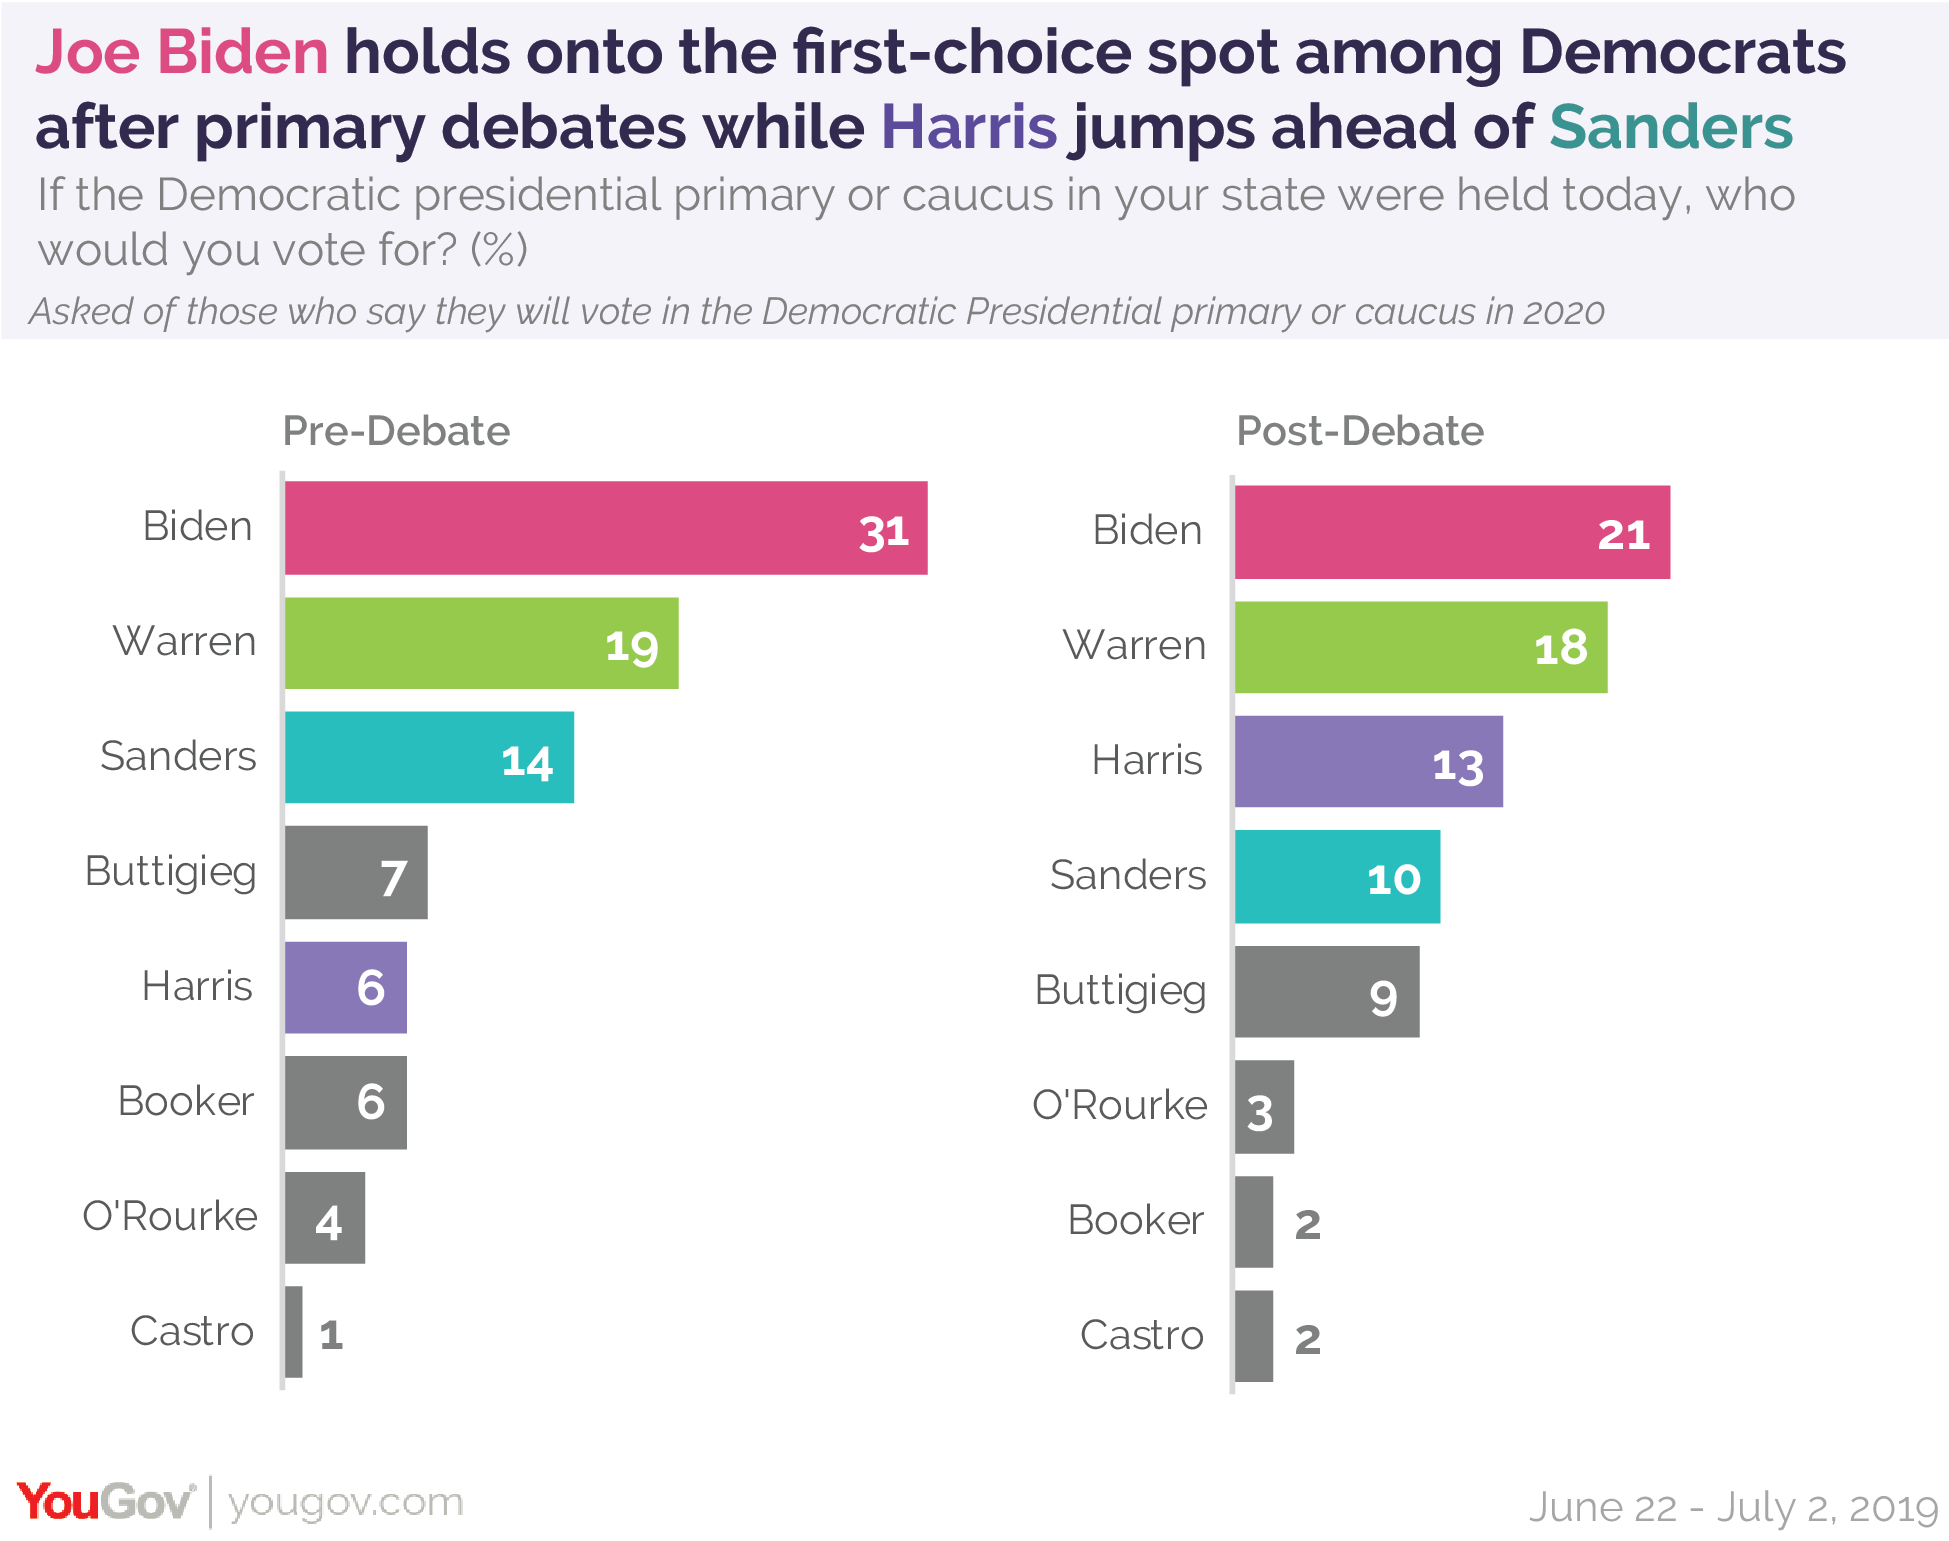 Joe Biden holds onto the first-choice spot among Democrats after primary debates while Harris jumps ahead of Sanders